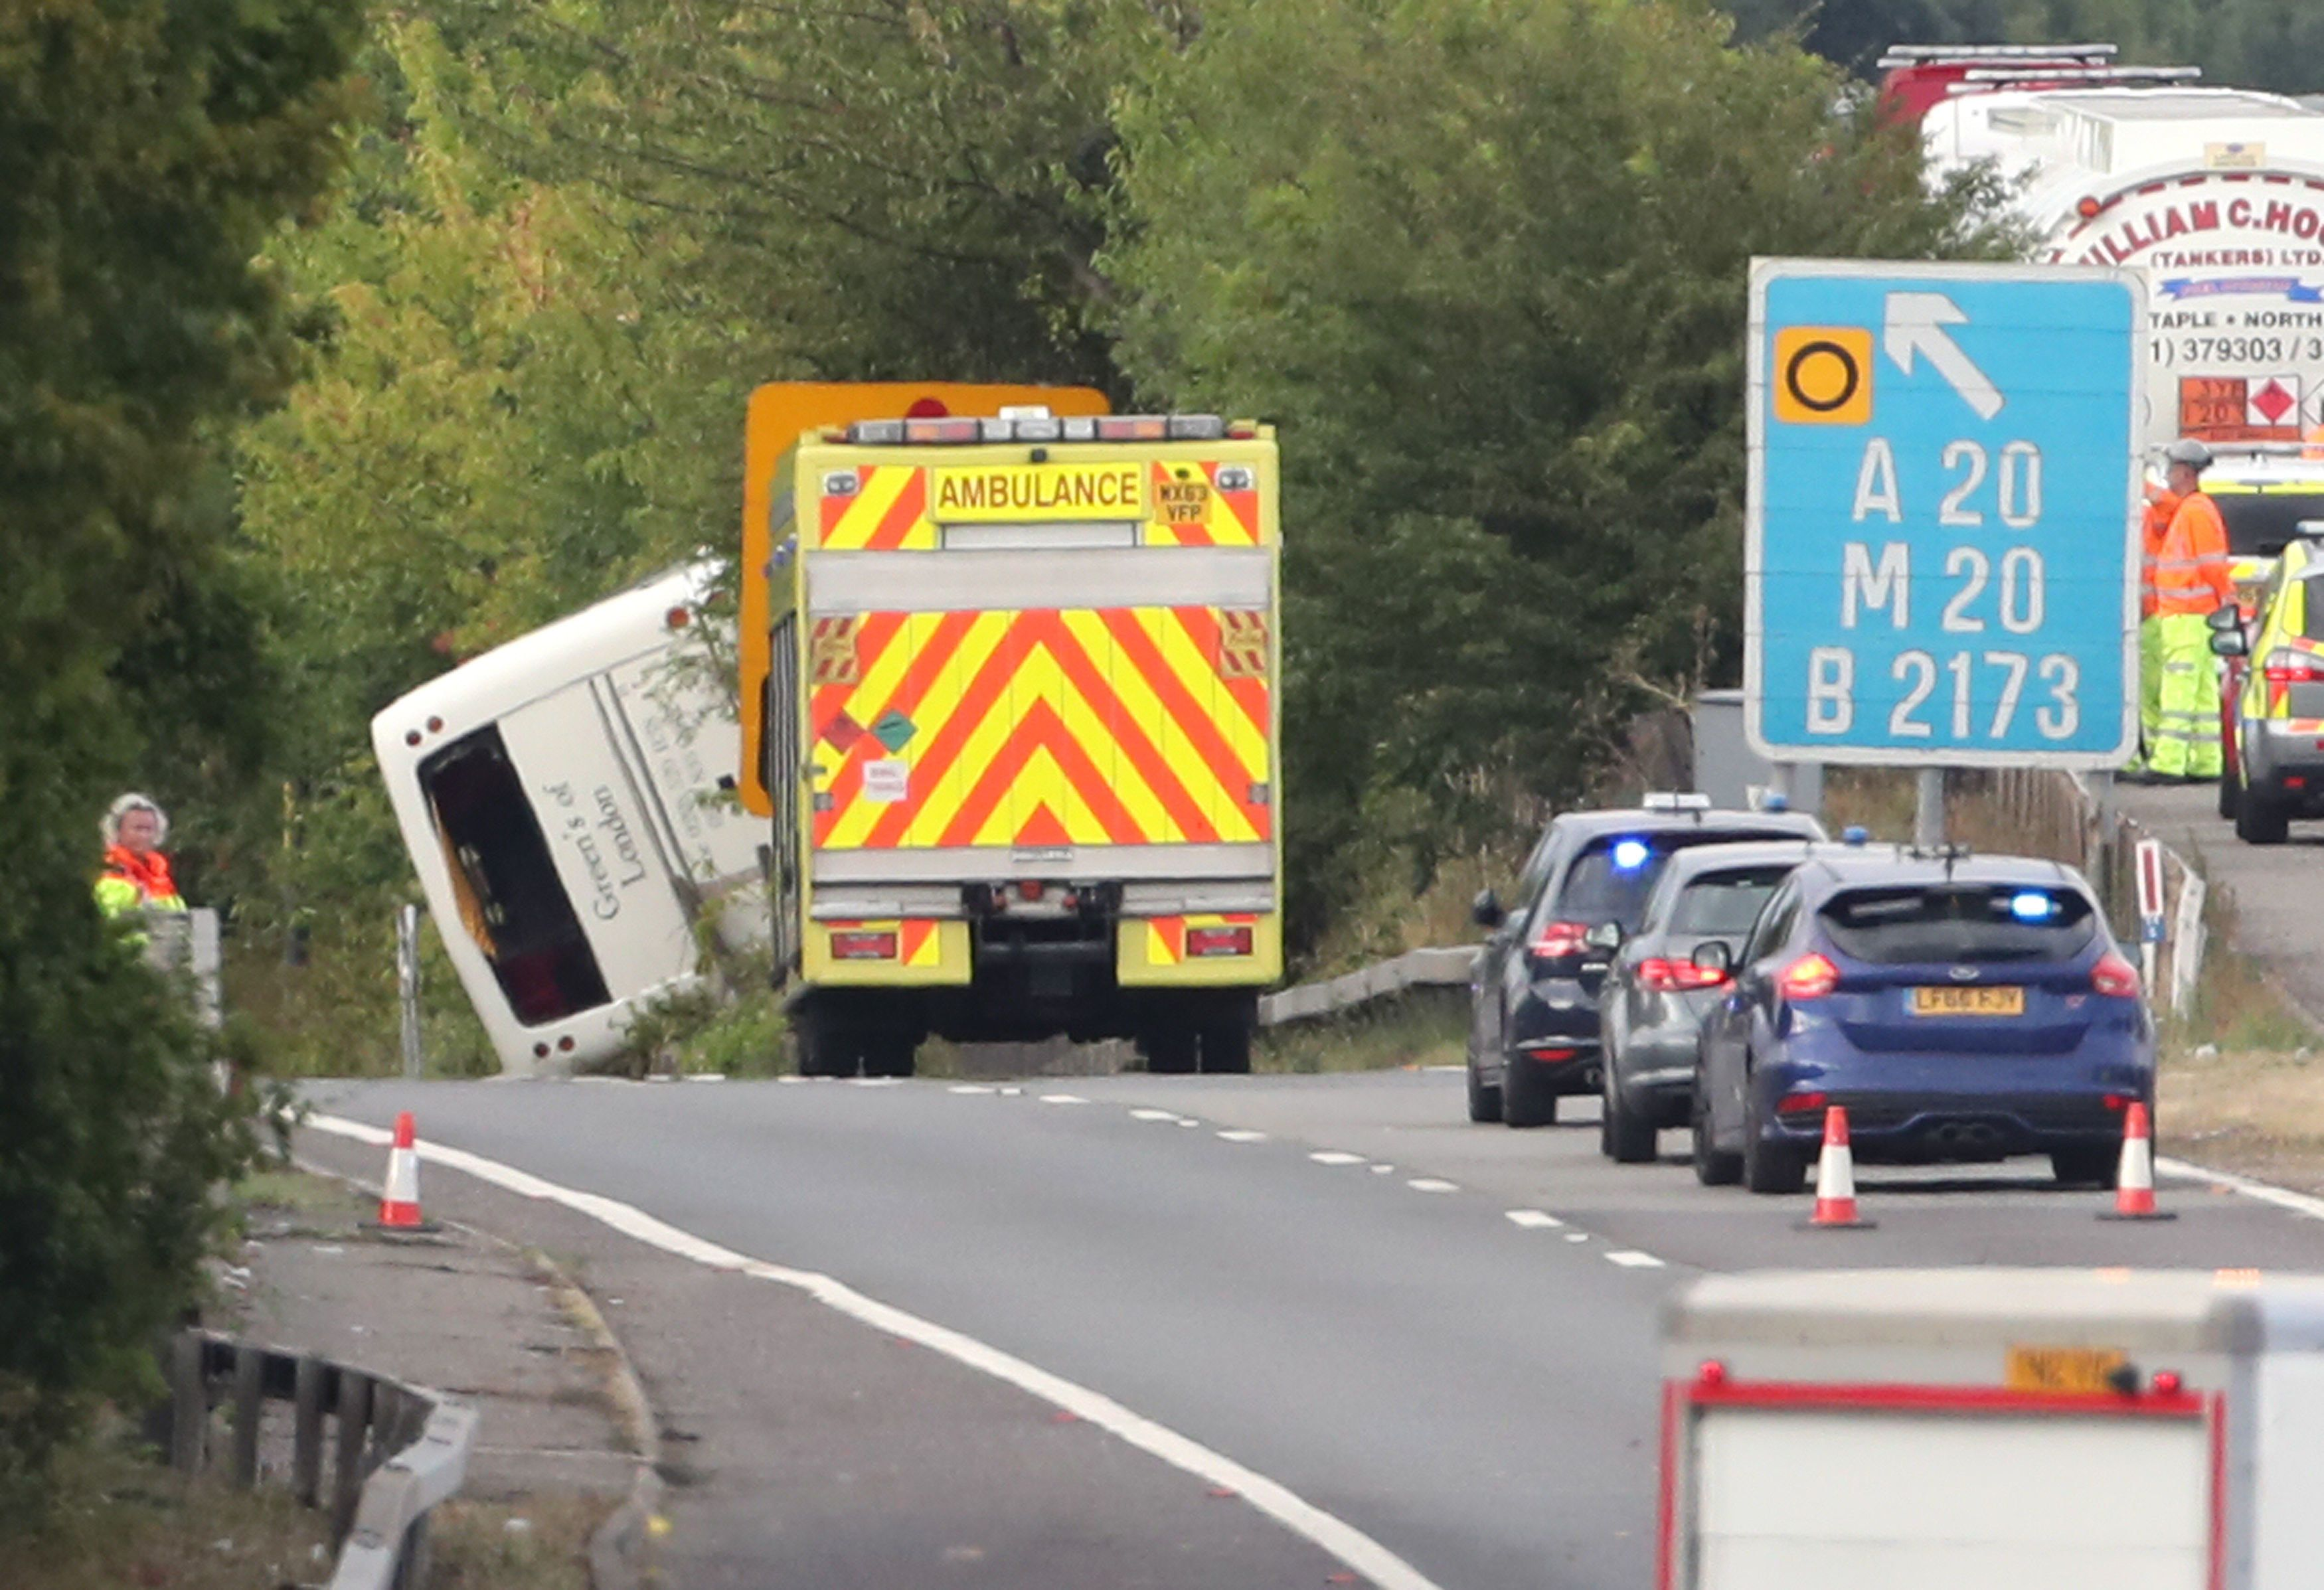 41 Injured As Coach Overturns On M25 In